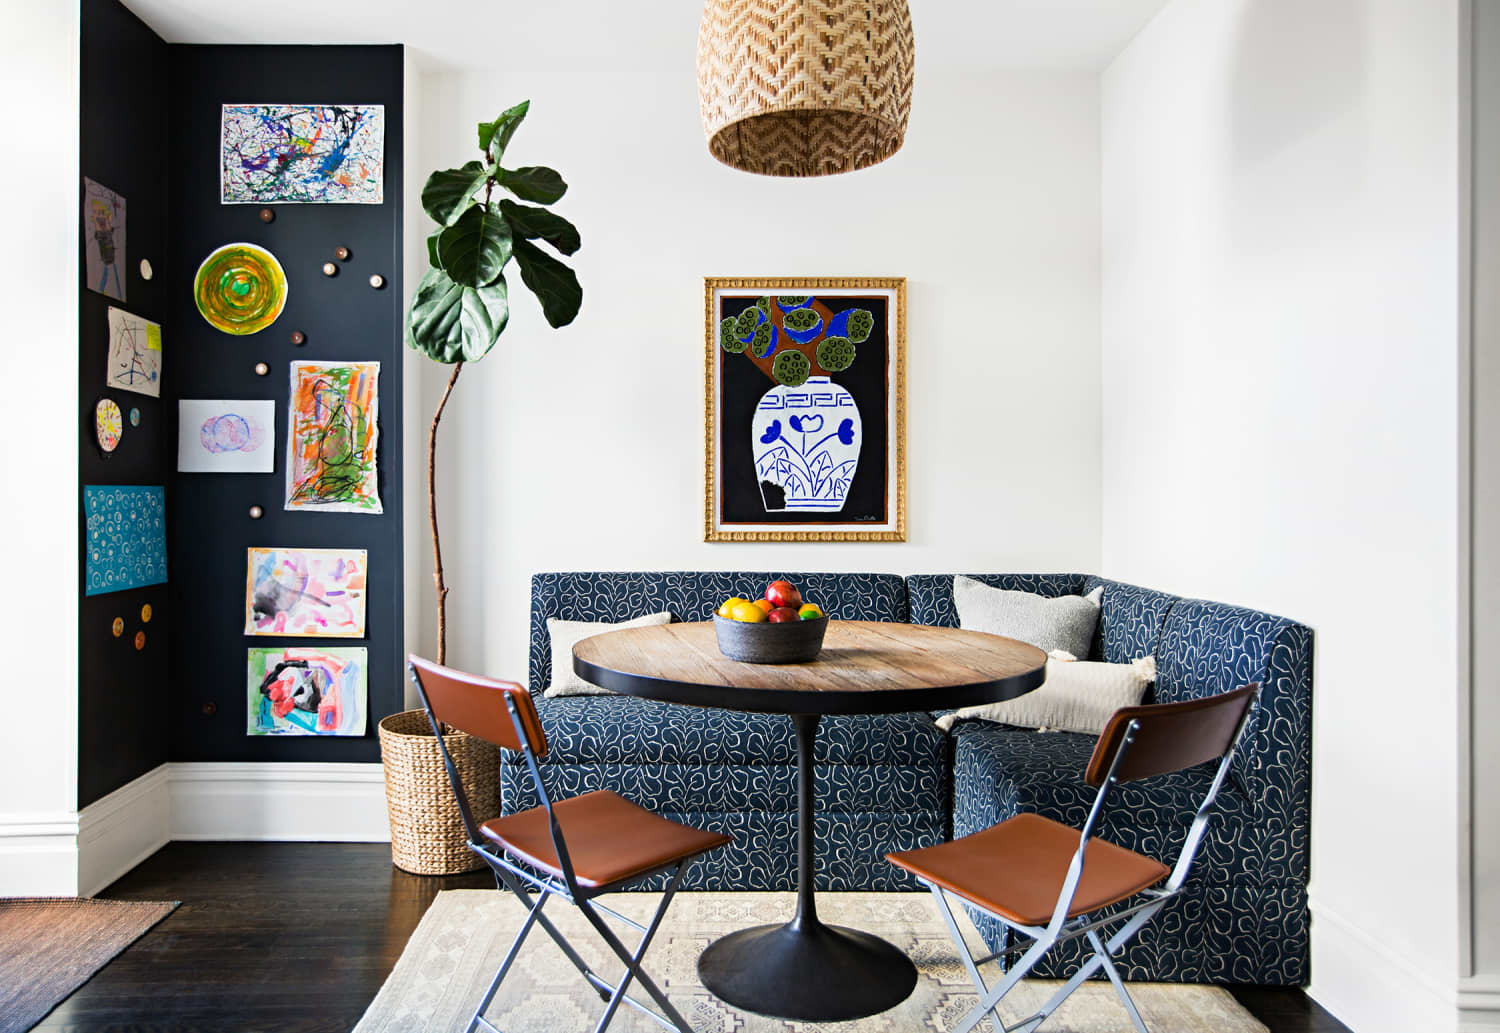 4 Simple Ways to Style Your Breakfast Nook